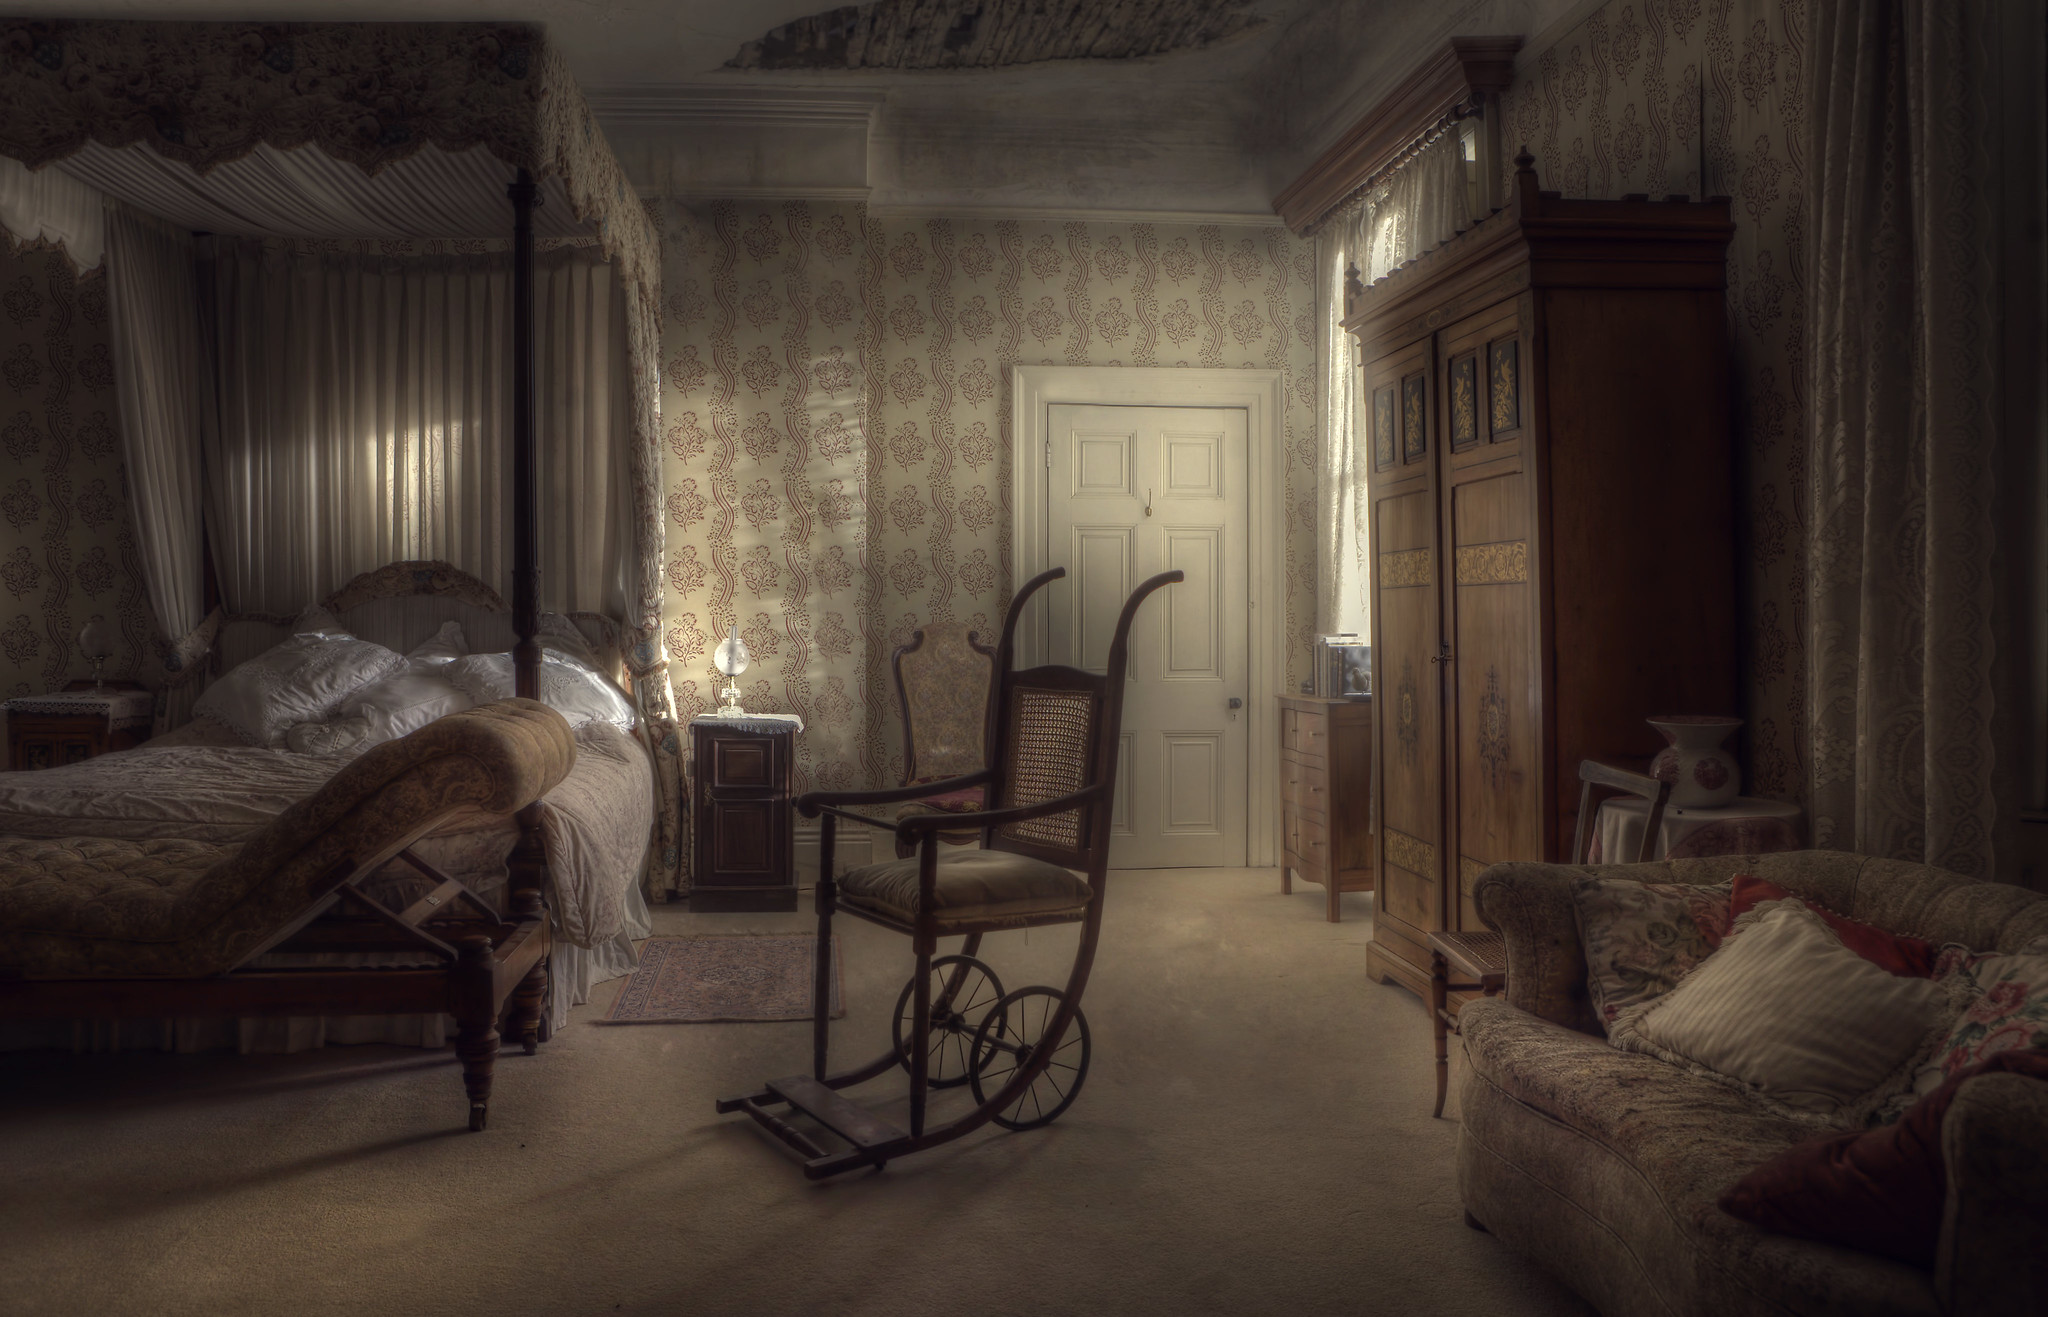 A musty bedroom. Photo by Andre Govia.